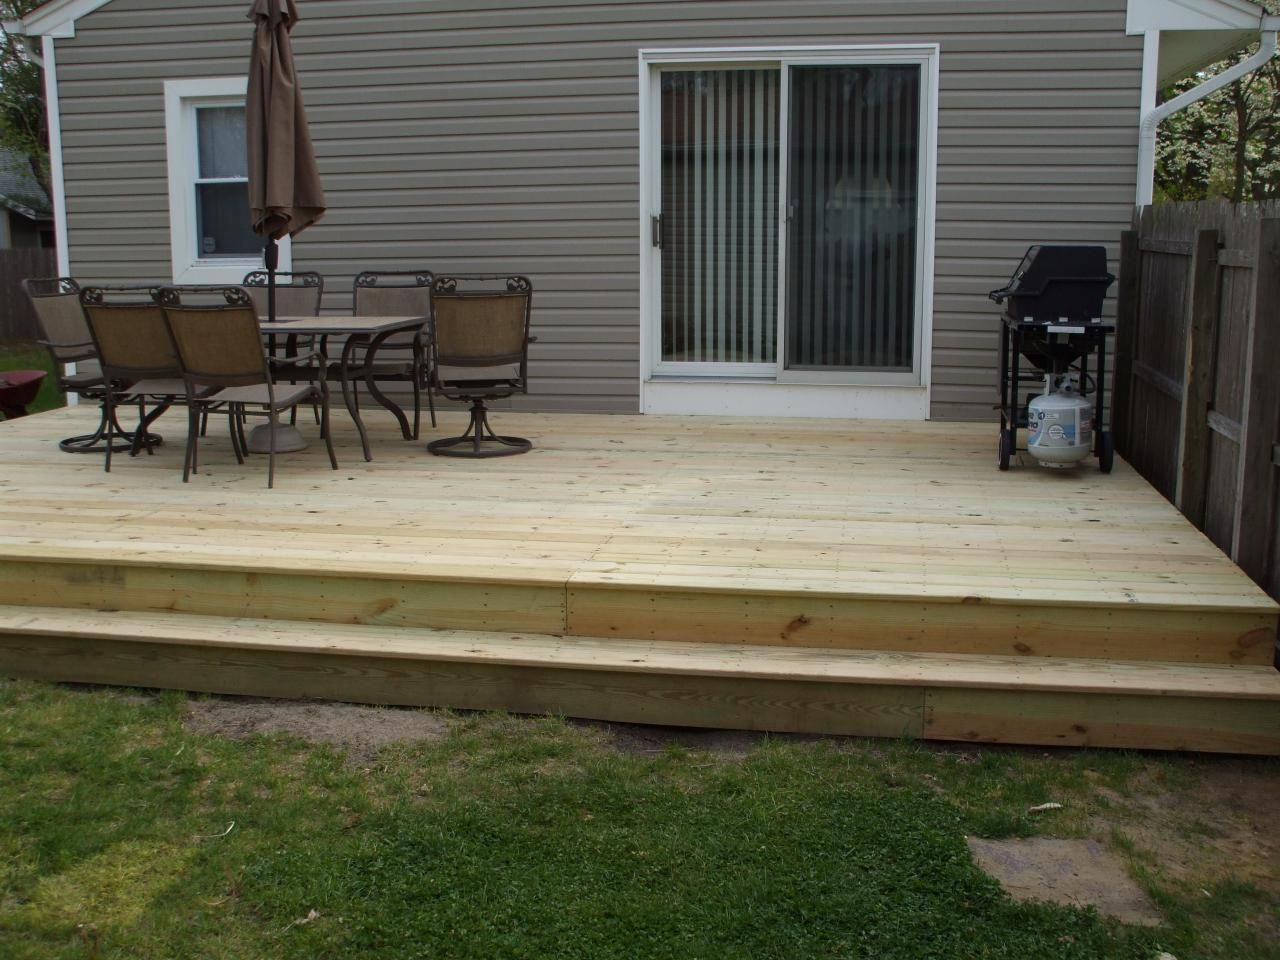 Modern elegant backyard deck ideas ground level there are for Ideas for deck designs